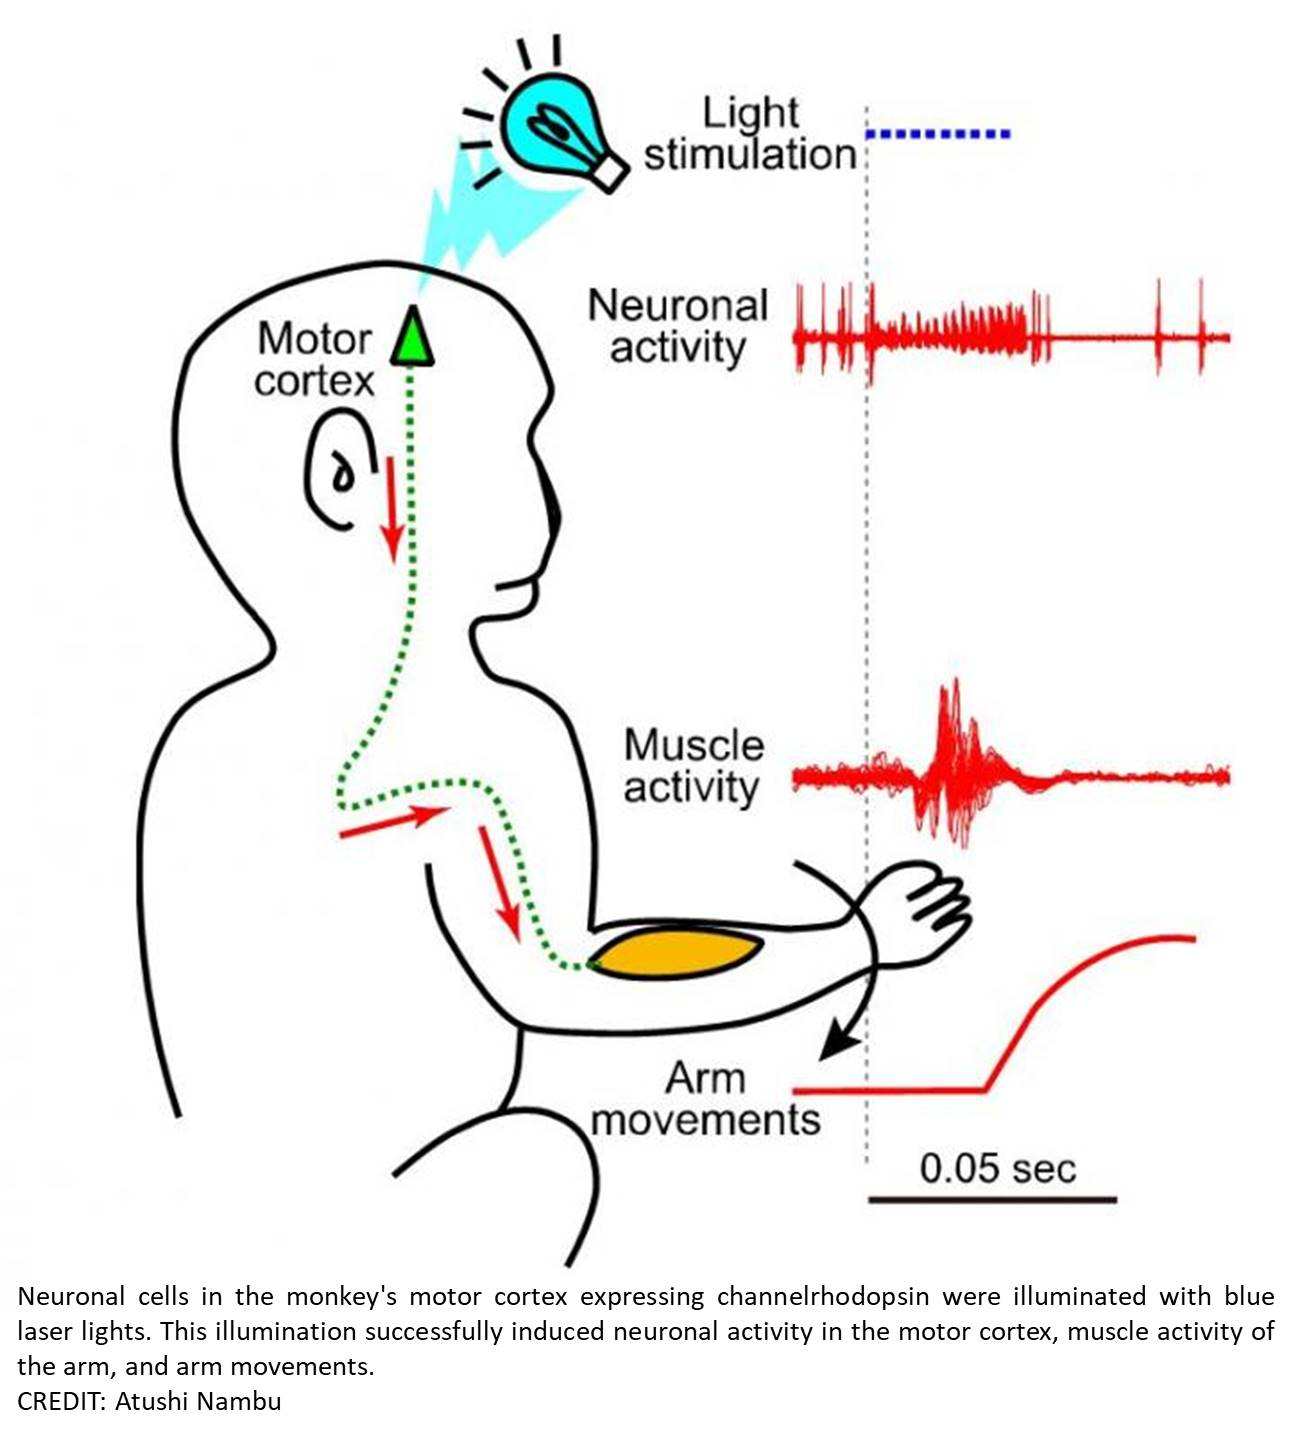 Optogenetic stimulation of the motor cortex successfully induced arm movements in monkeys